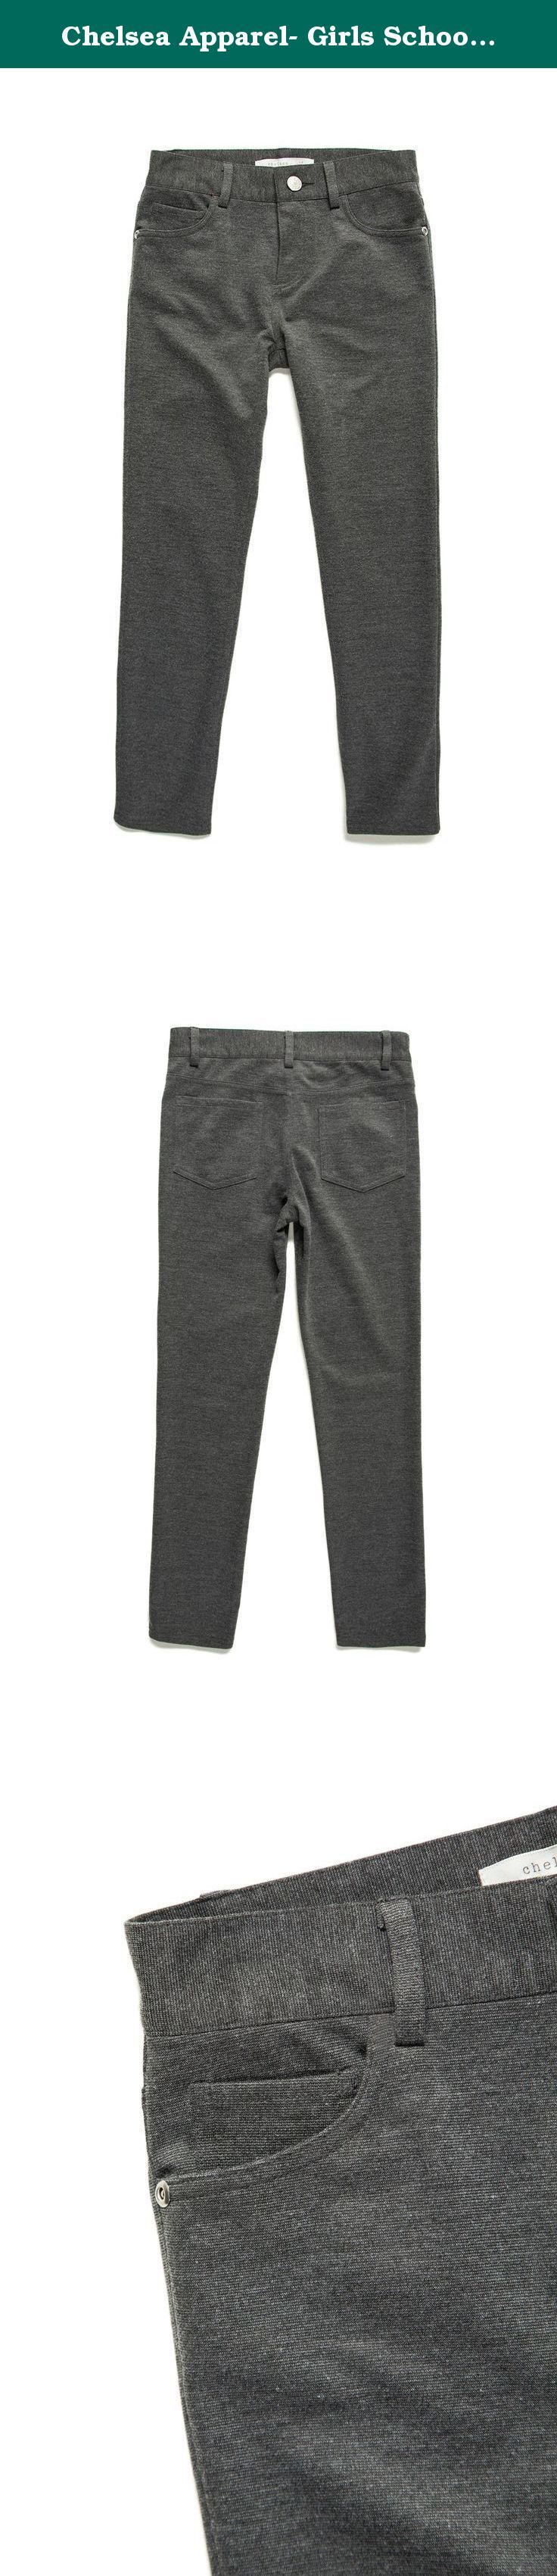 Chelsea Apparel- Girls School Uniforms Ponte Knit Pants MP1069R, CHARCOAL, XS. Chelsea Apparel- Girls School Uniforms Ponte Knit Pants Very comfortably school uniform or casual ponte knit pants for kids and girls Your Children will love to wear them everyday.